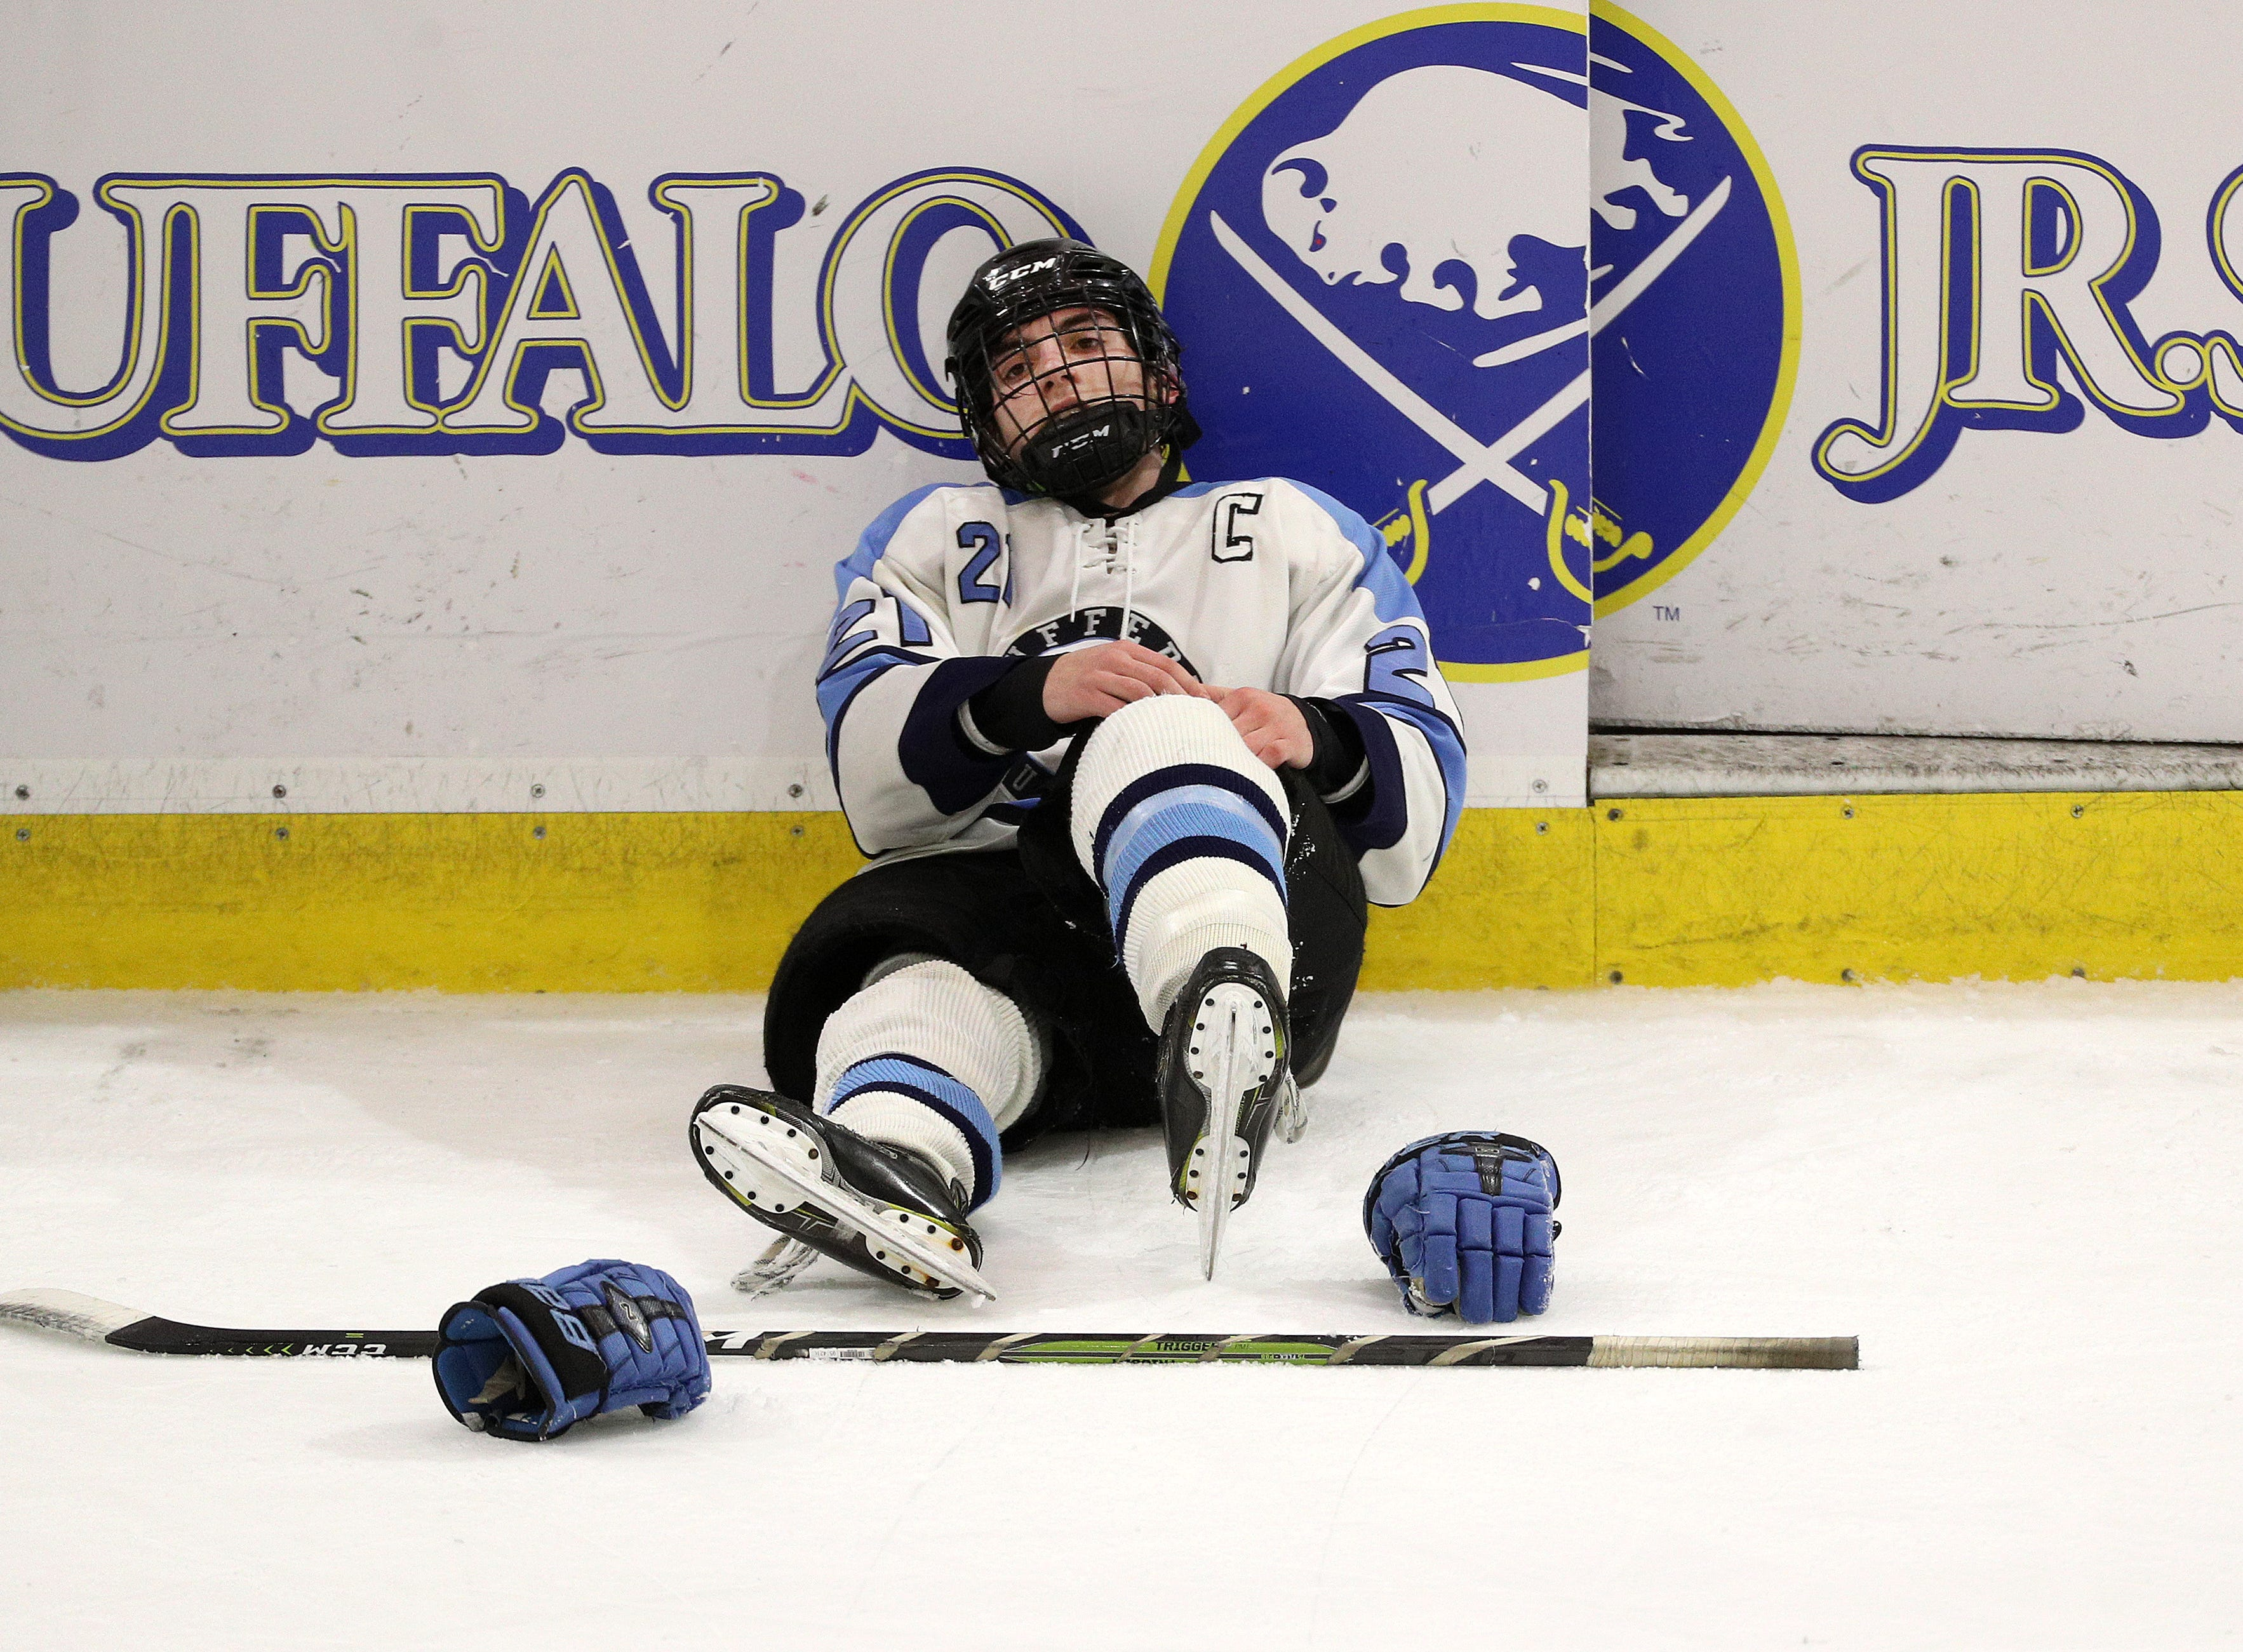 Suffern's Kyle Foresta sits dejected on the ice after the Mounties fell to Syracuse 4-2 in the Division l state final.